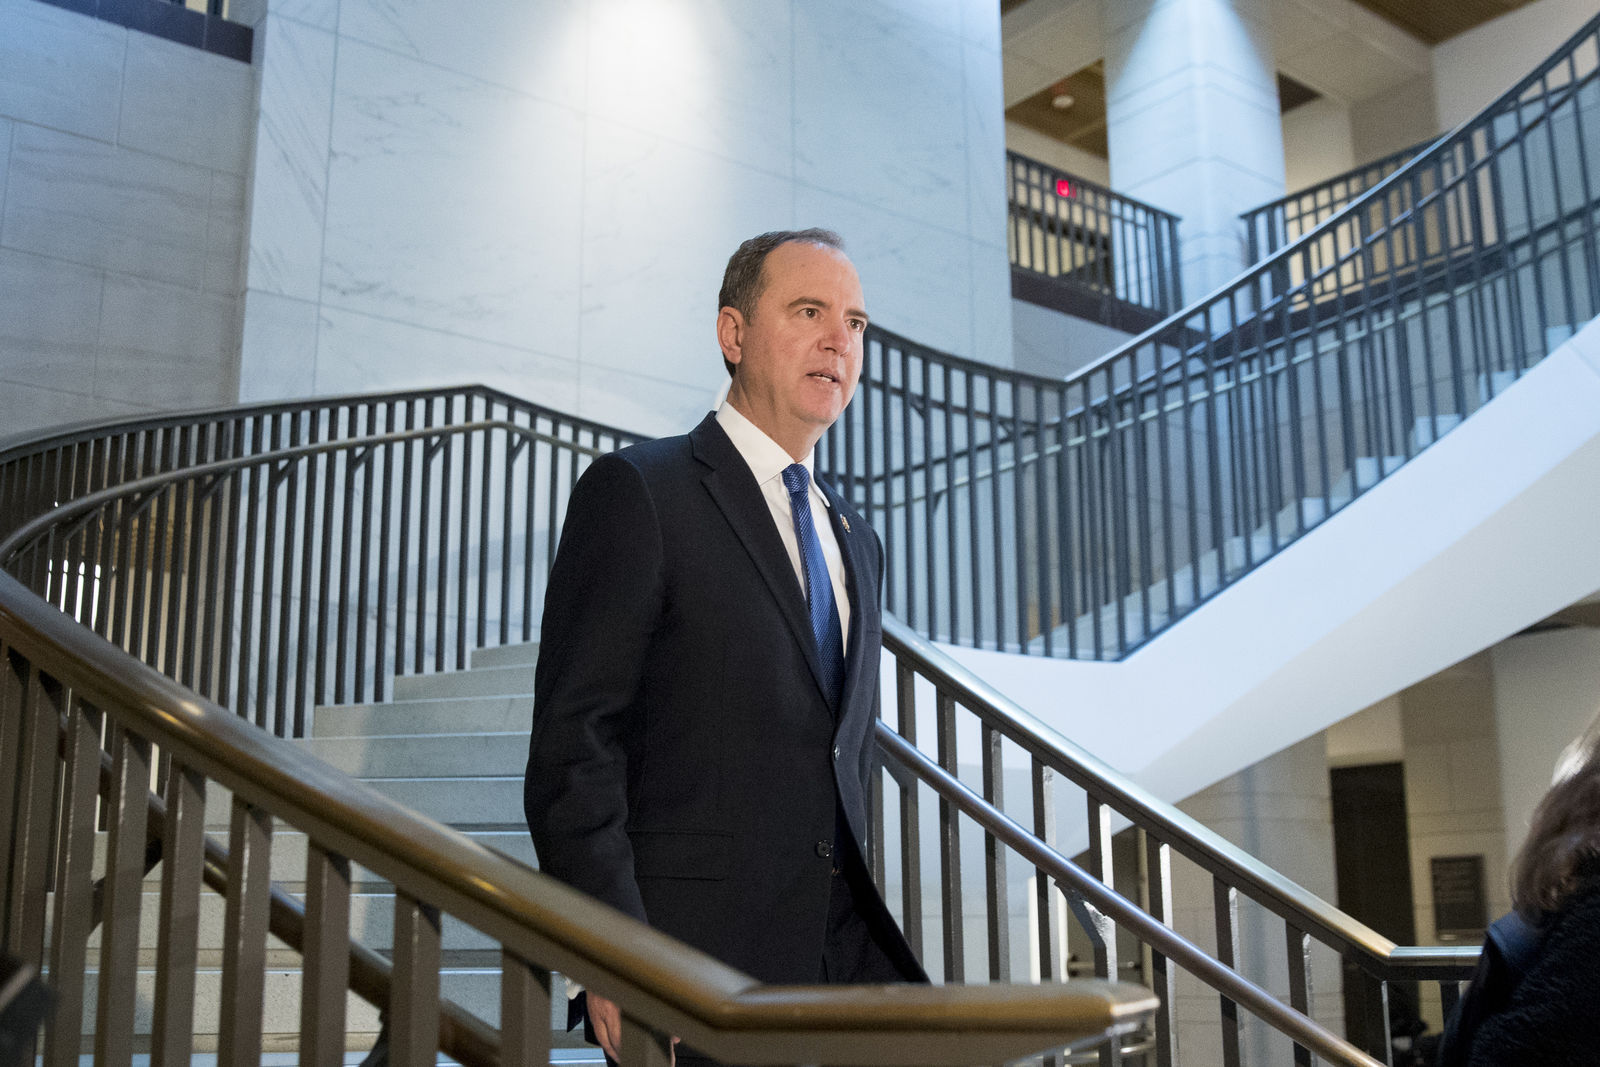 House Intelligence Committee Chairman Rep. Adam Schiff, of Calif., arrives on Capitol Hill in Washington, Monday, Oct. 14, 2019, before former WH advisor on Russia, Fiona Hill, is scheduled to testify before congressional lawmakers as part of the House impeachment inquiry into President Donald Trump. (AP Photo/Andrew Harnik)